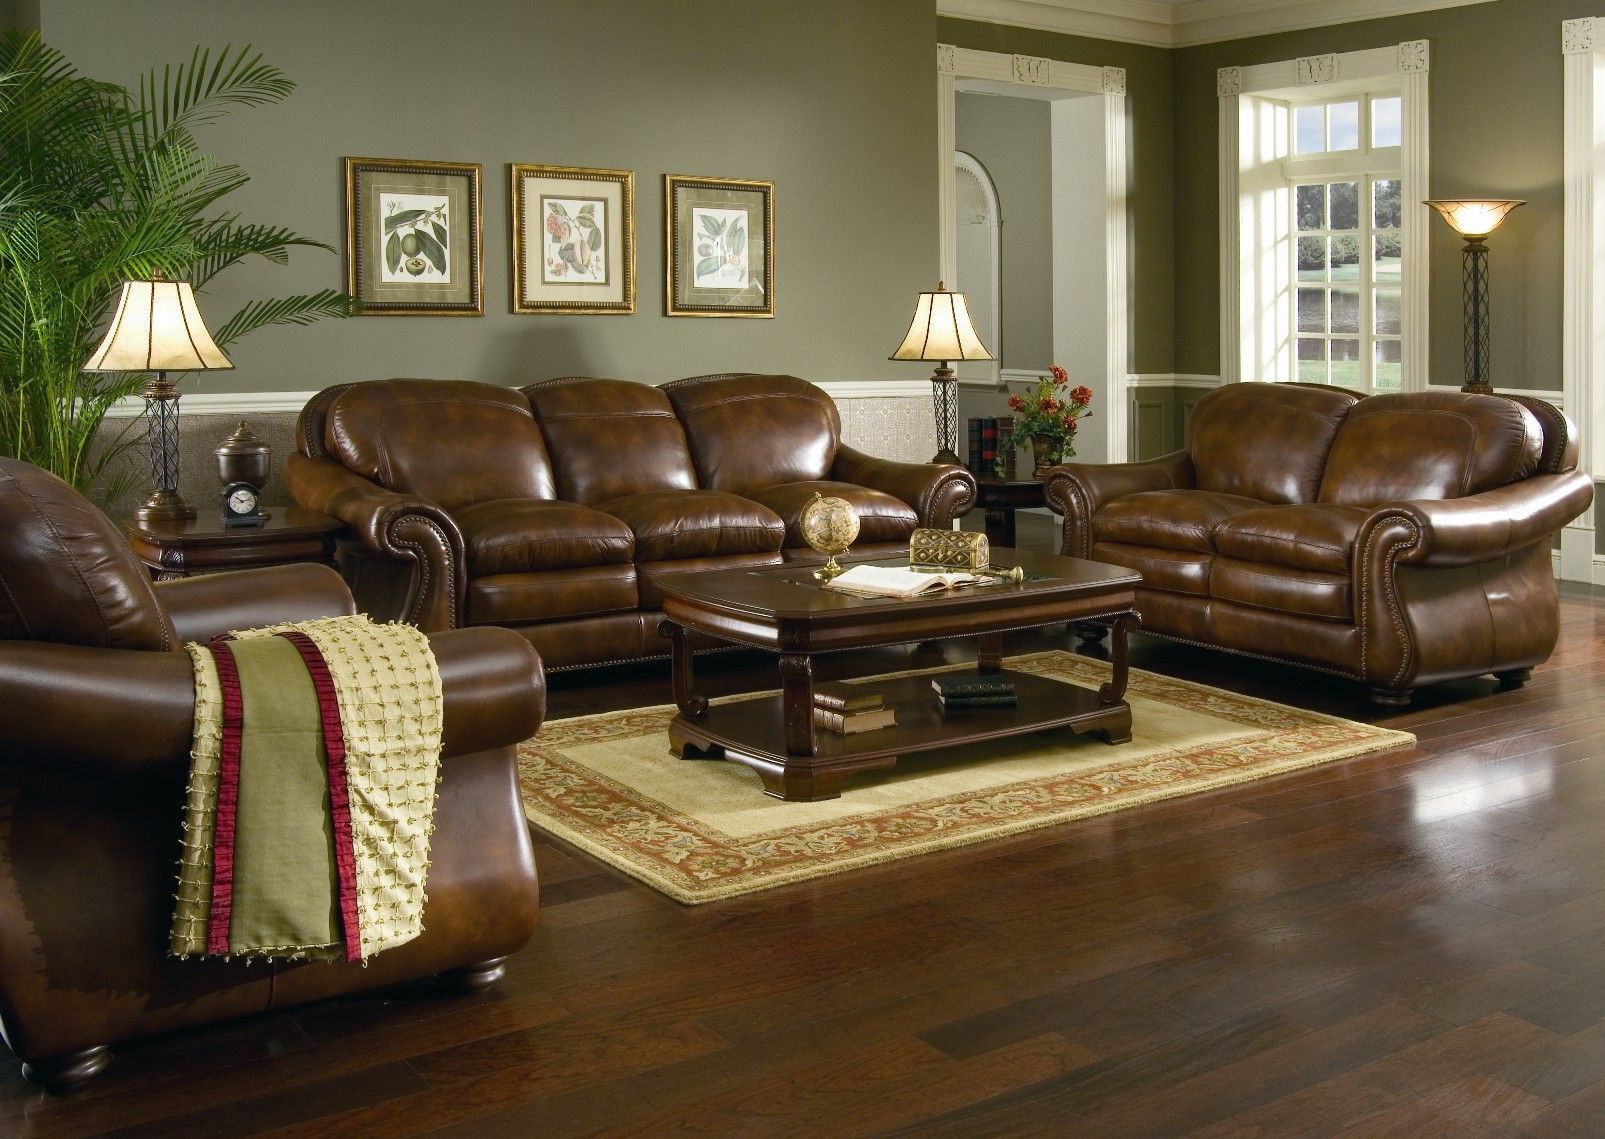 Living Room Ideas Brown Furniture best 25+ leather living rooms ideas on pinterest | leather living